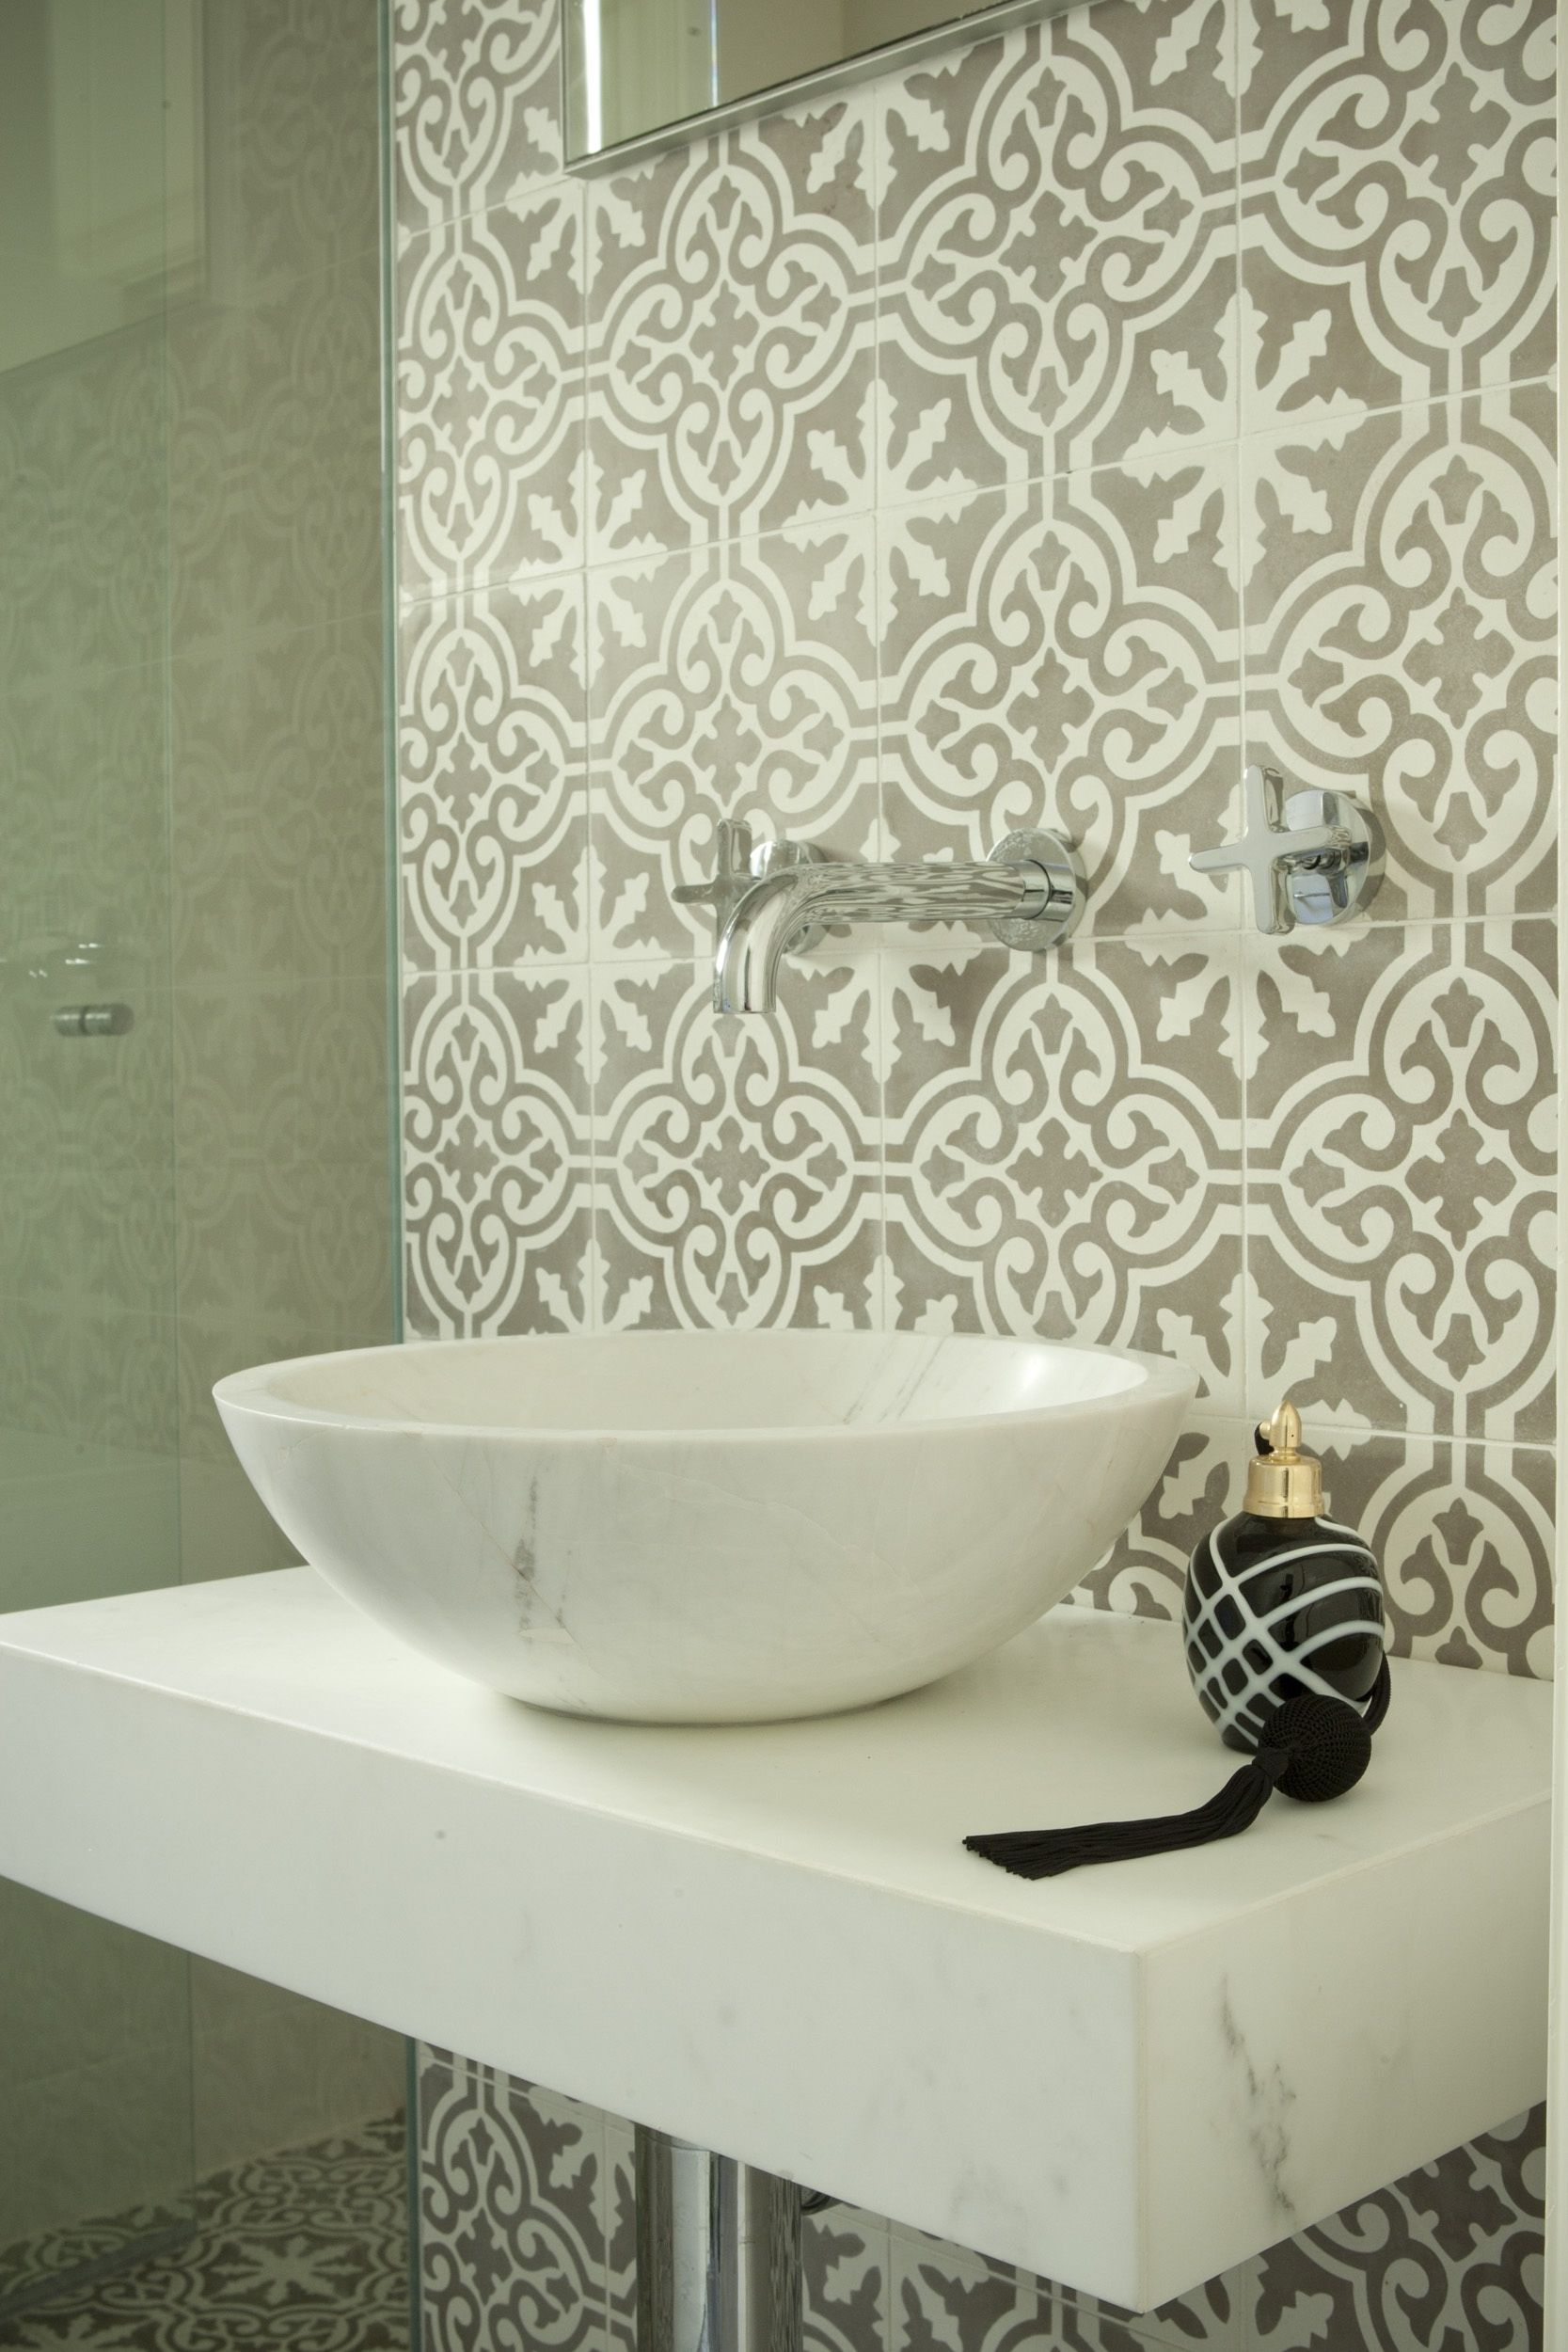 Guest bathroom with jatana tiles and marble basin brooke aitken guest bathroom with jatana tiles and marble basin brooke aitken design dailygadgetfo Image collections